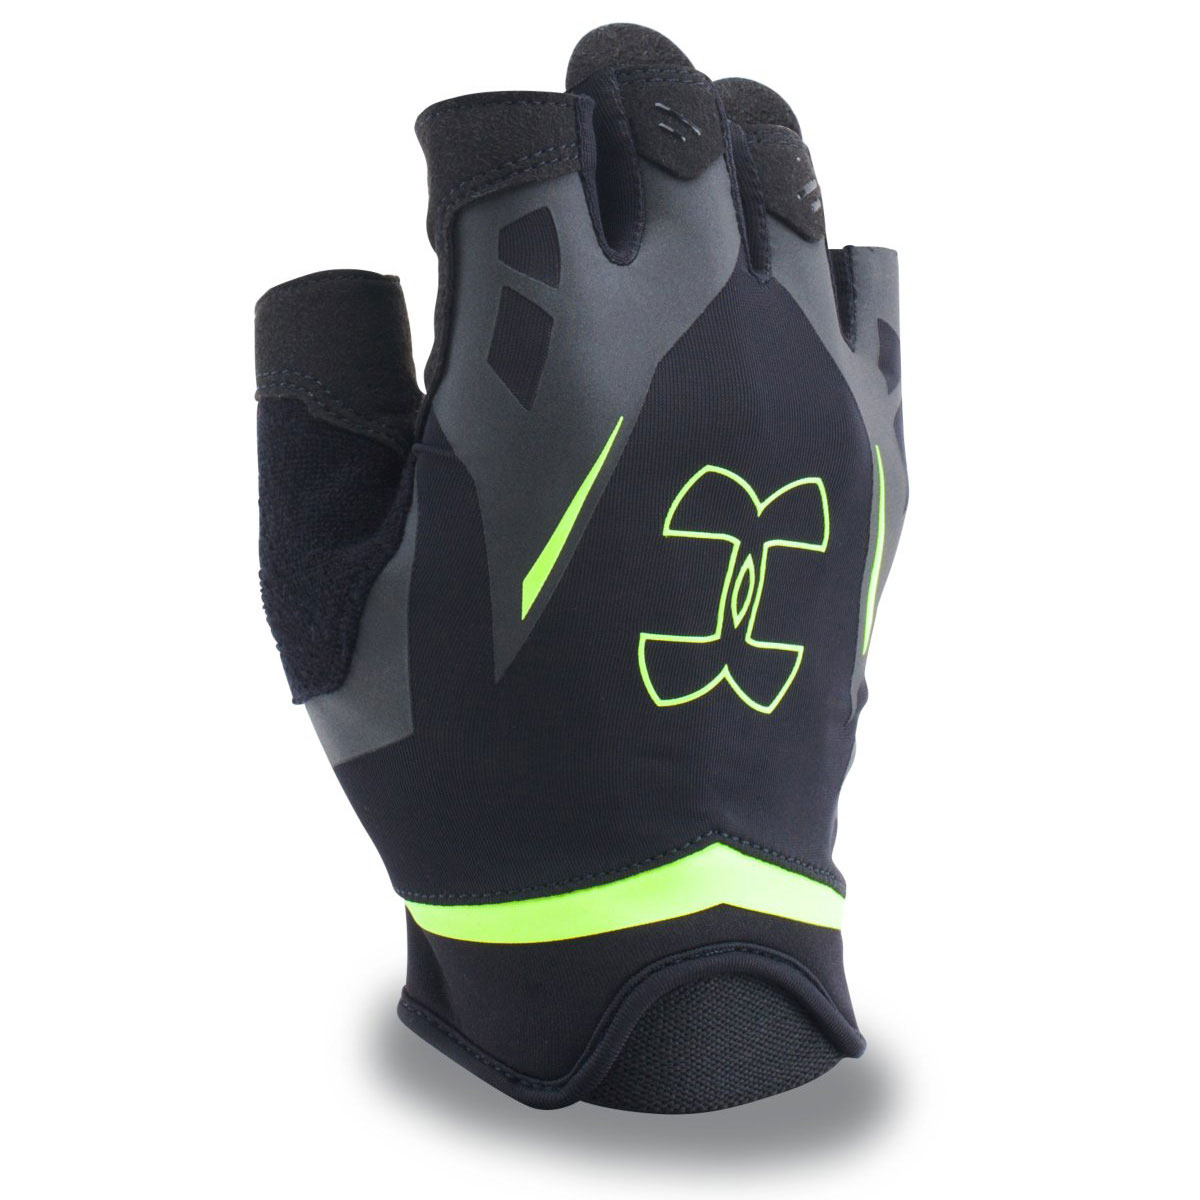 Under Armour 2015 Mens Ua Renegade Training Gloves Support: Under Armour 2017 Mens UA Flux Half-Finger Training Gloves